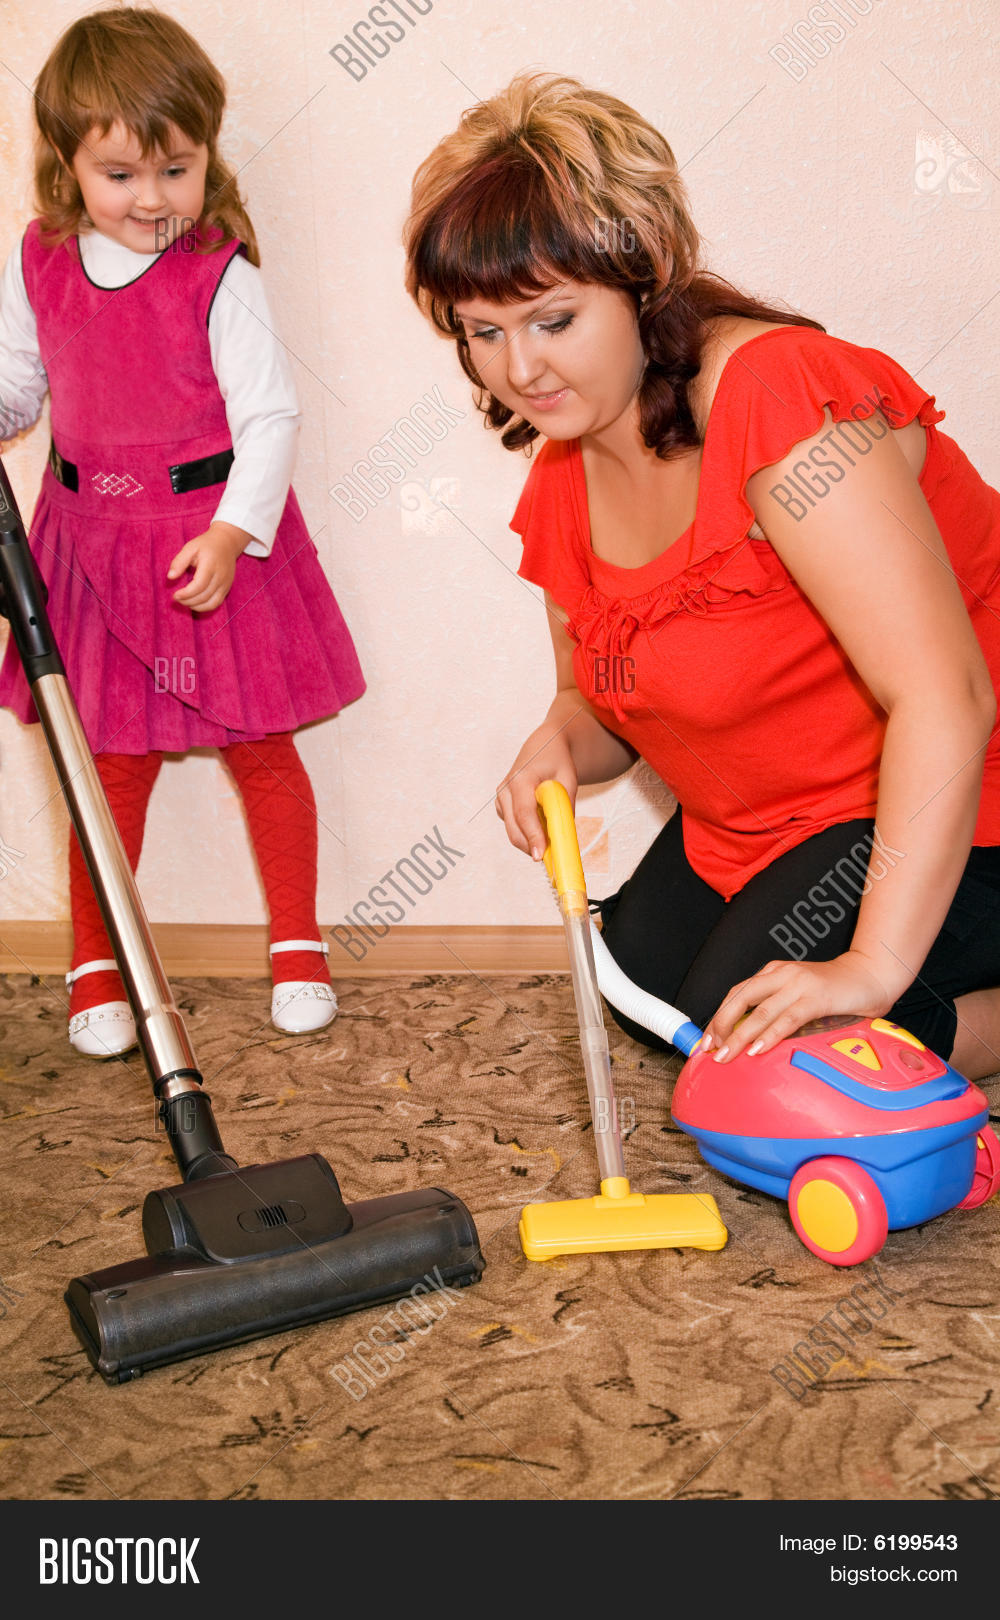 Chubby woman vacuum cleaner | XXX pictures)